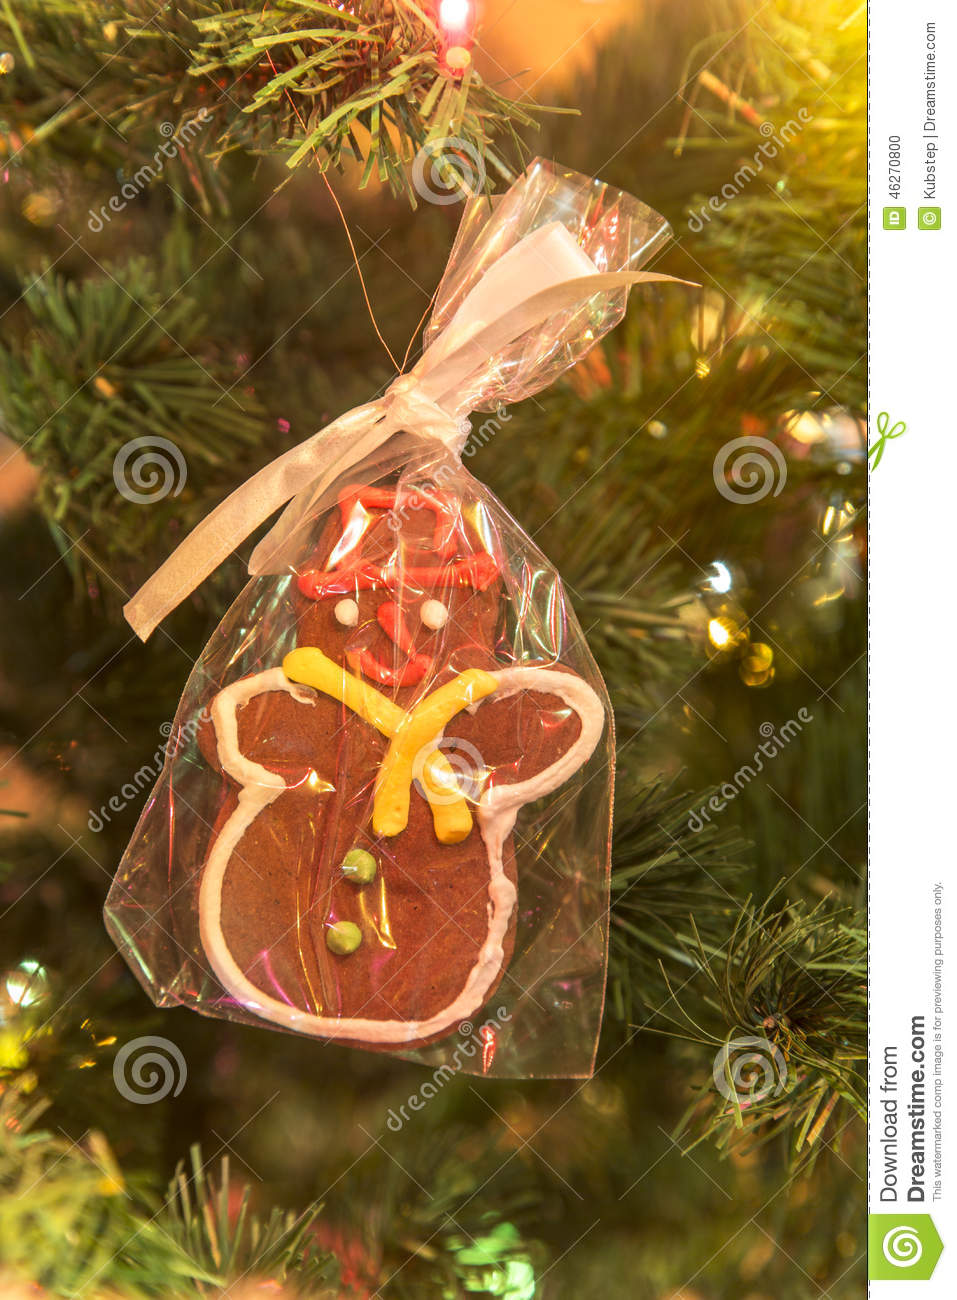 Beautiful hand made gingerbread man on Christmas Tree